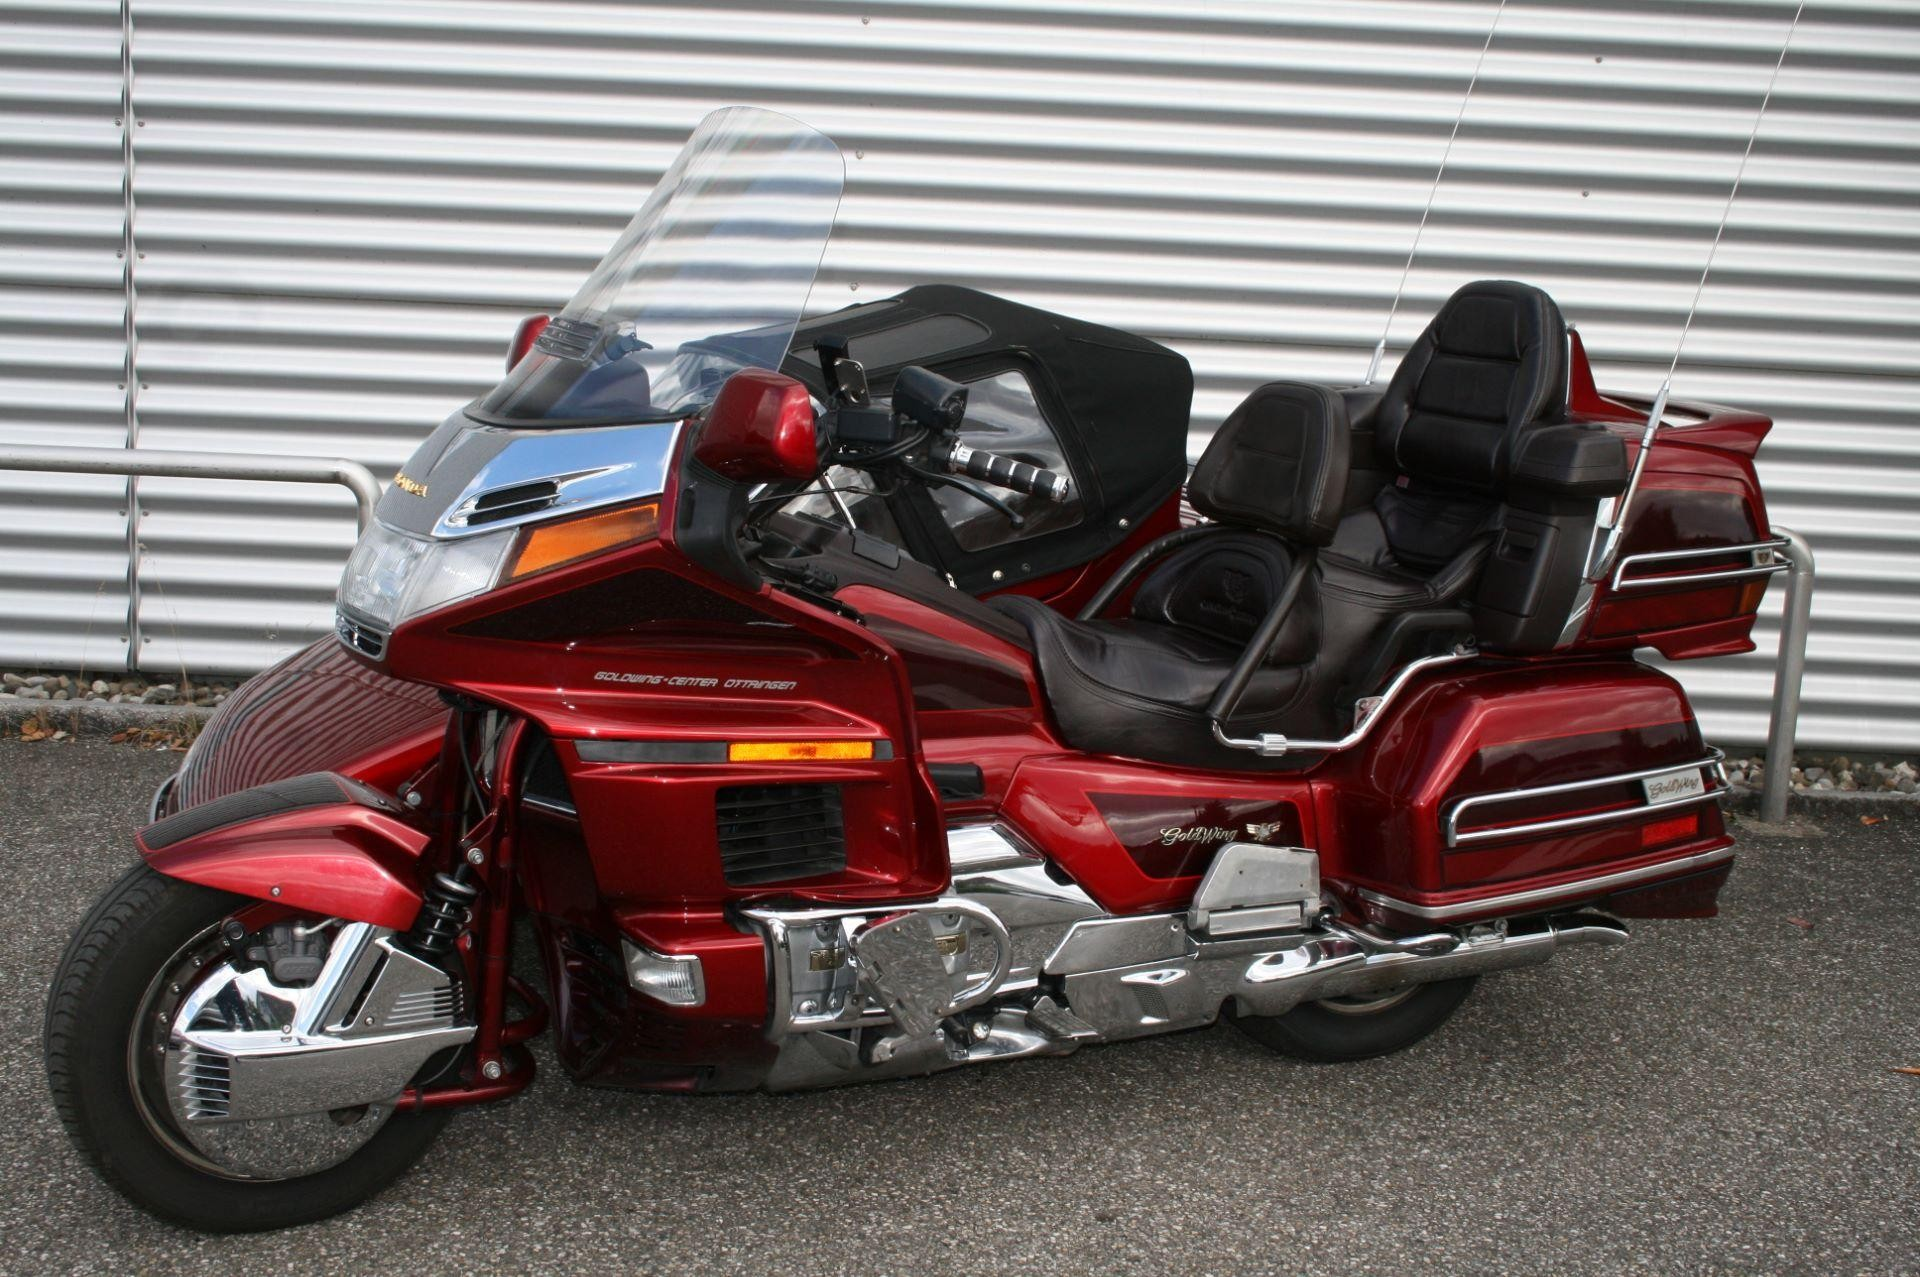 honda gl 1500 gold wing se seitenwagen goldwing center. Black Bedroom Furniture Sets. Home Design Ideas